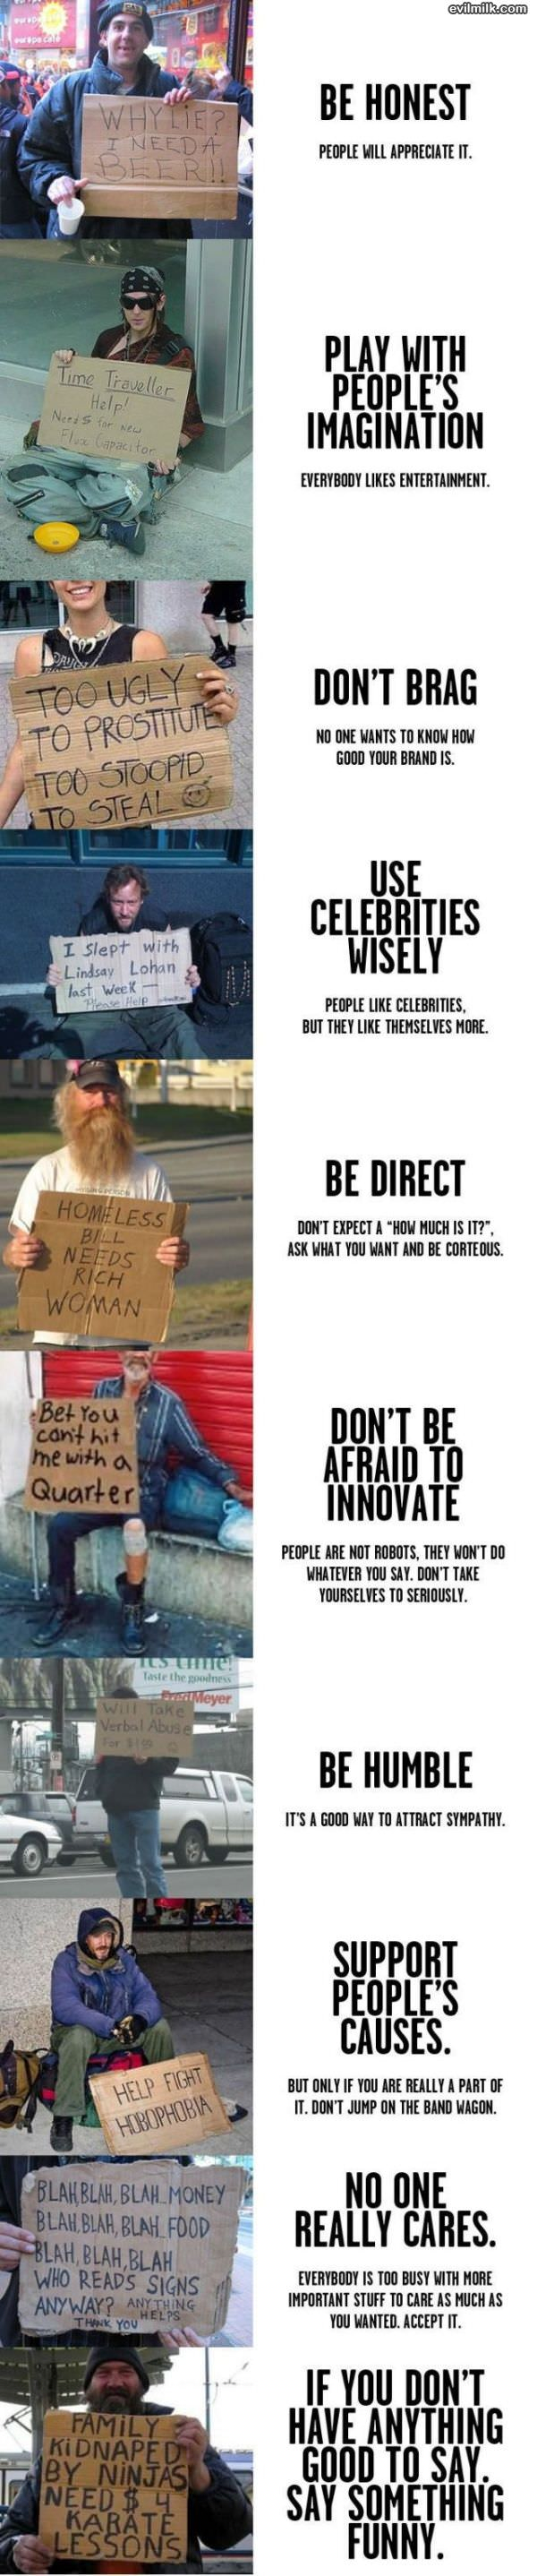 Homeless Signs